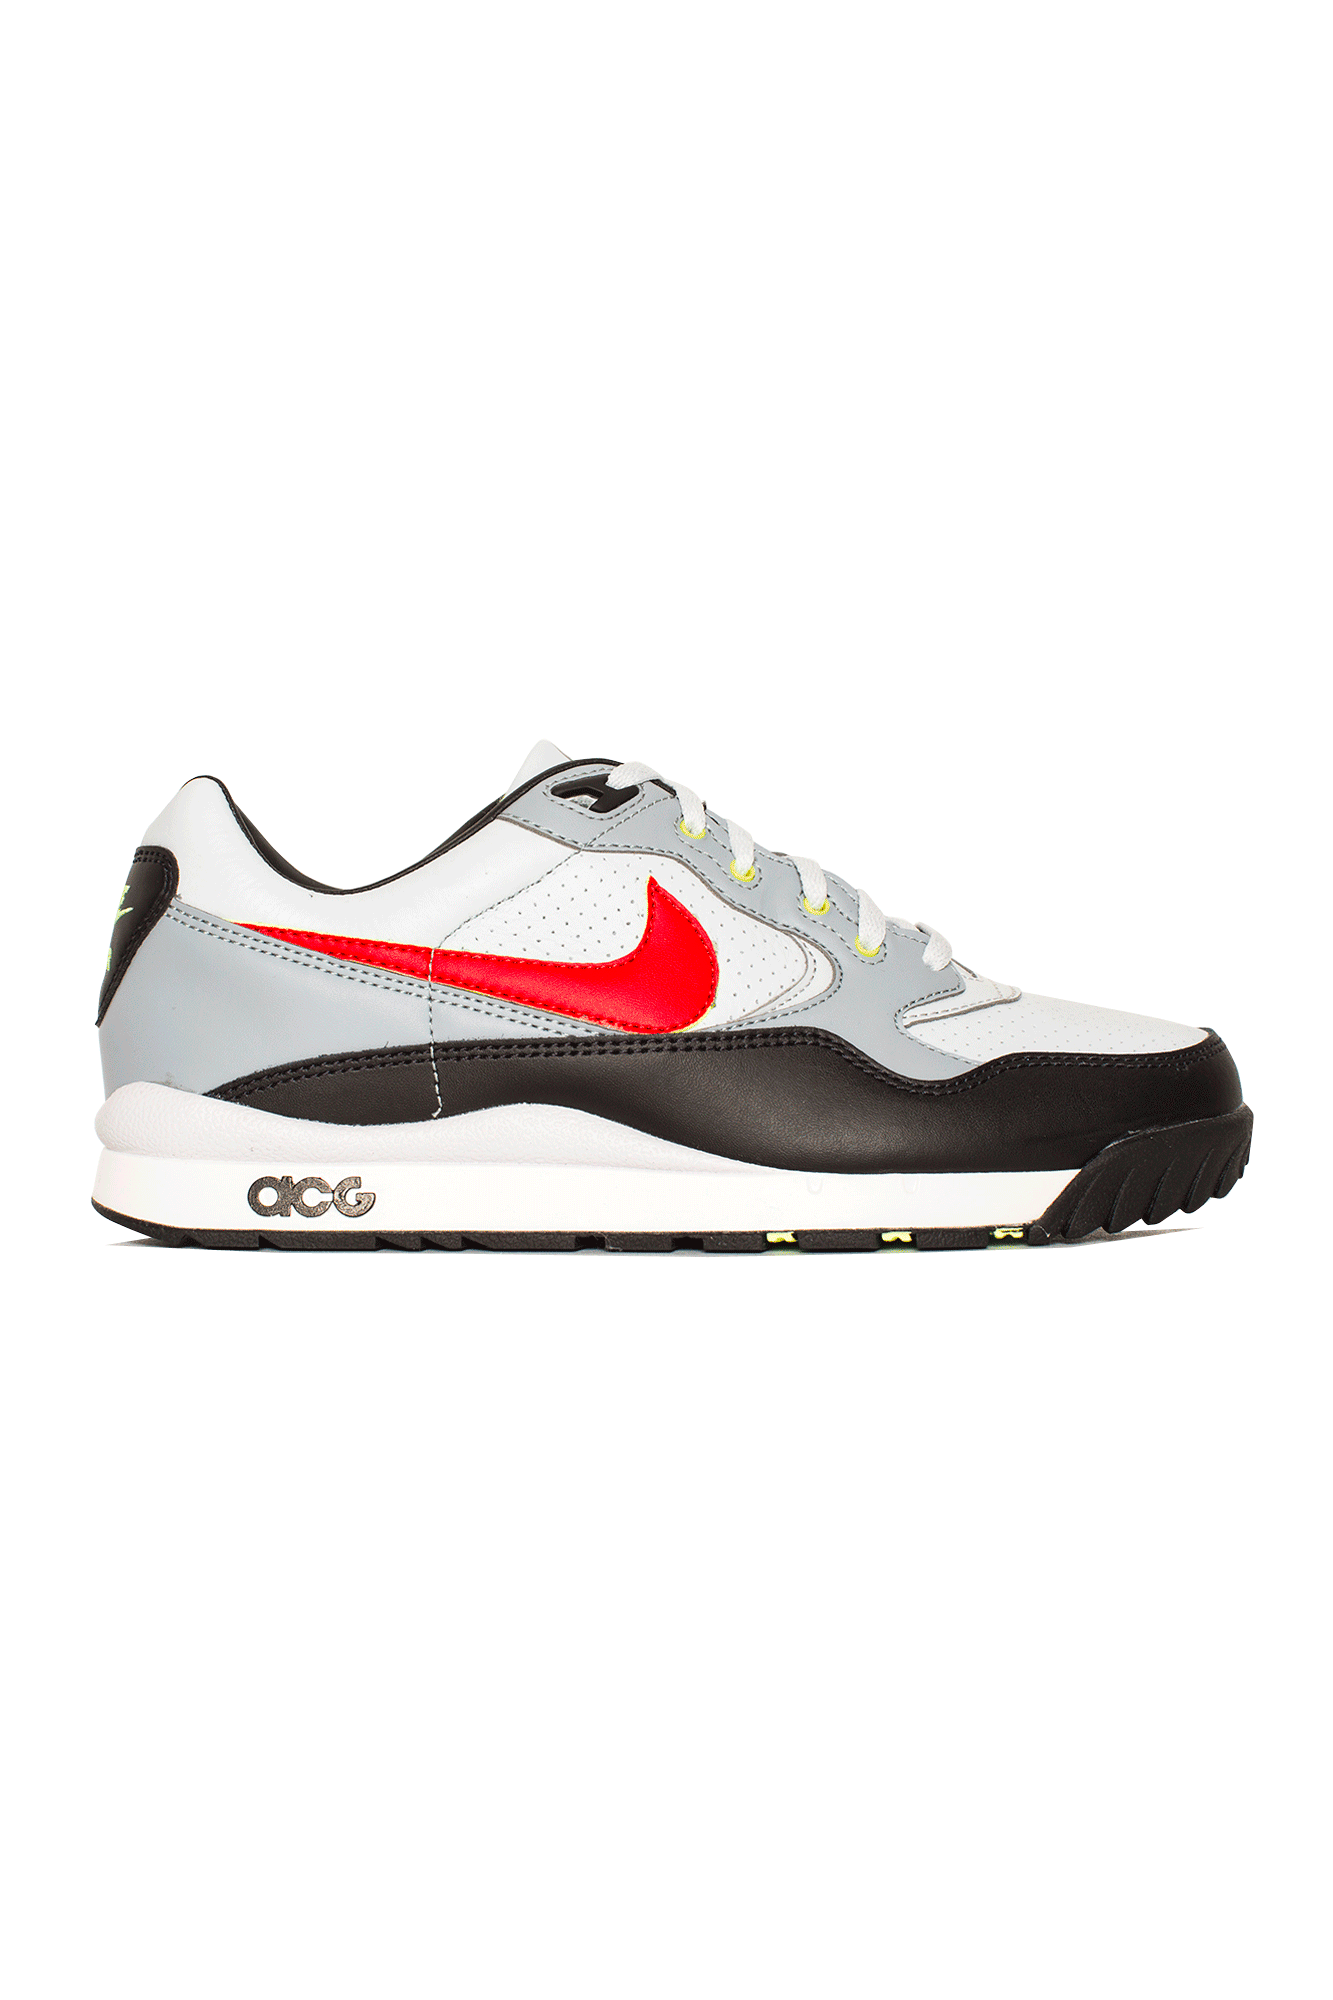 Collector's Choice: Nike ACG Sneakers | Sneakers Magazine